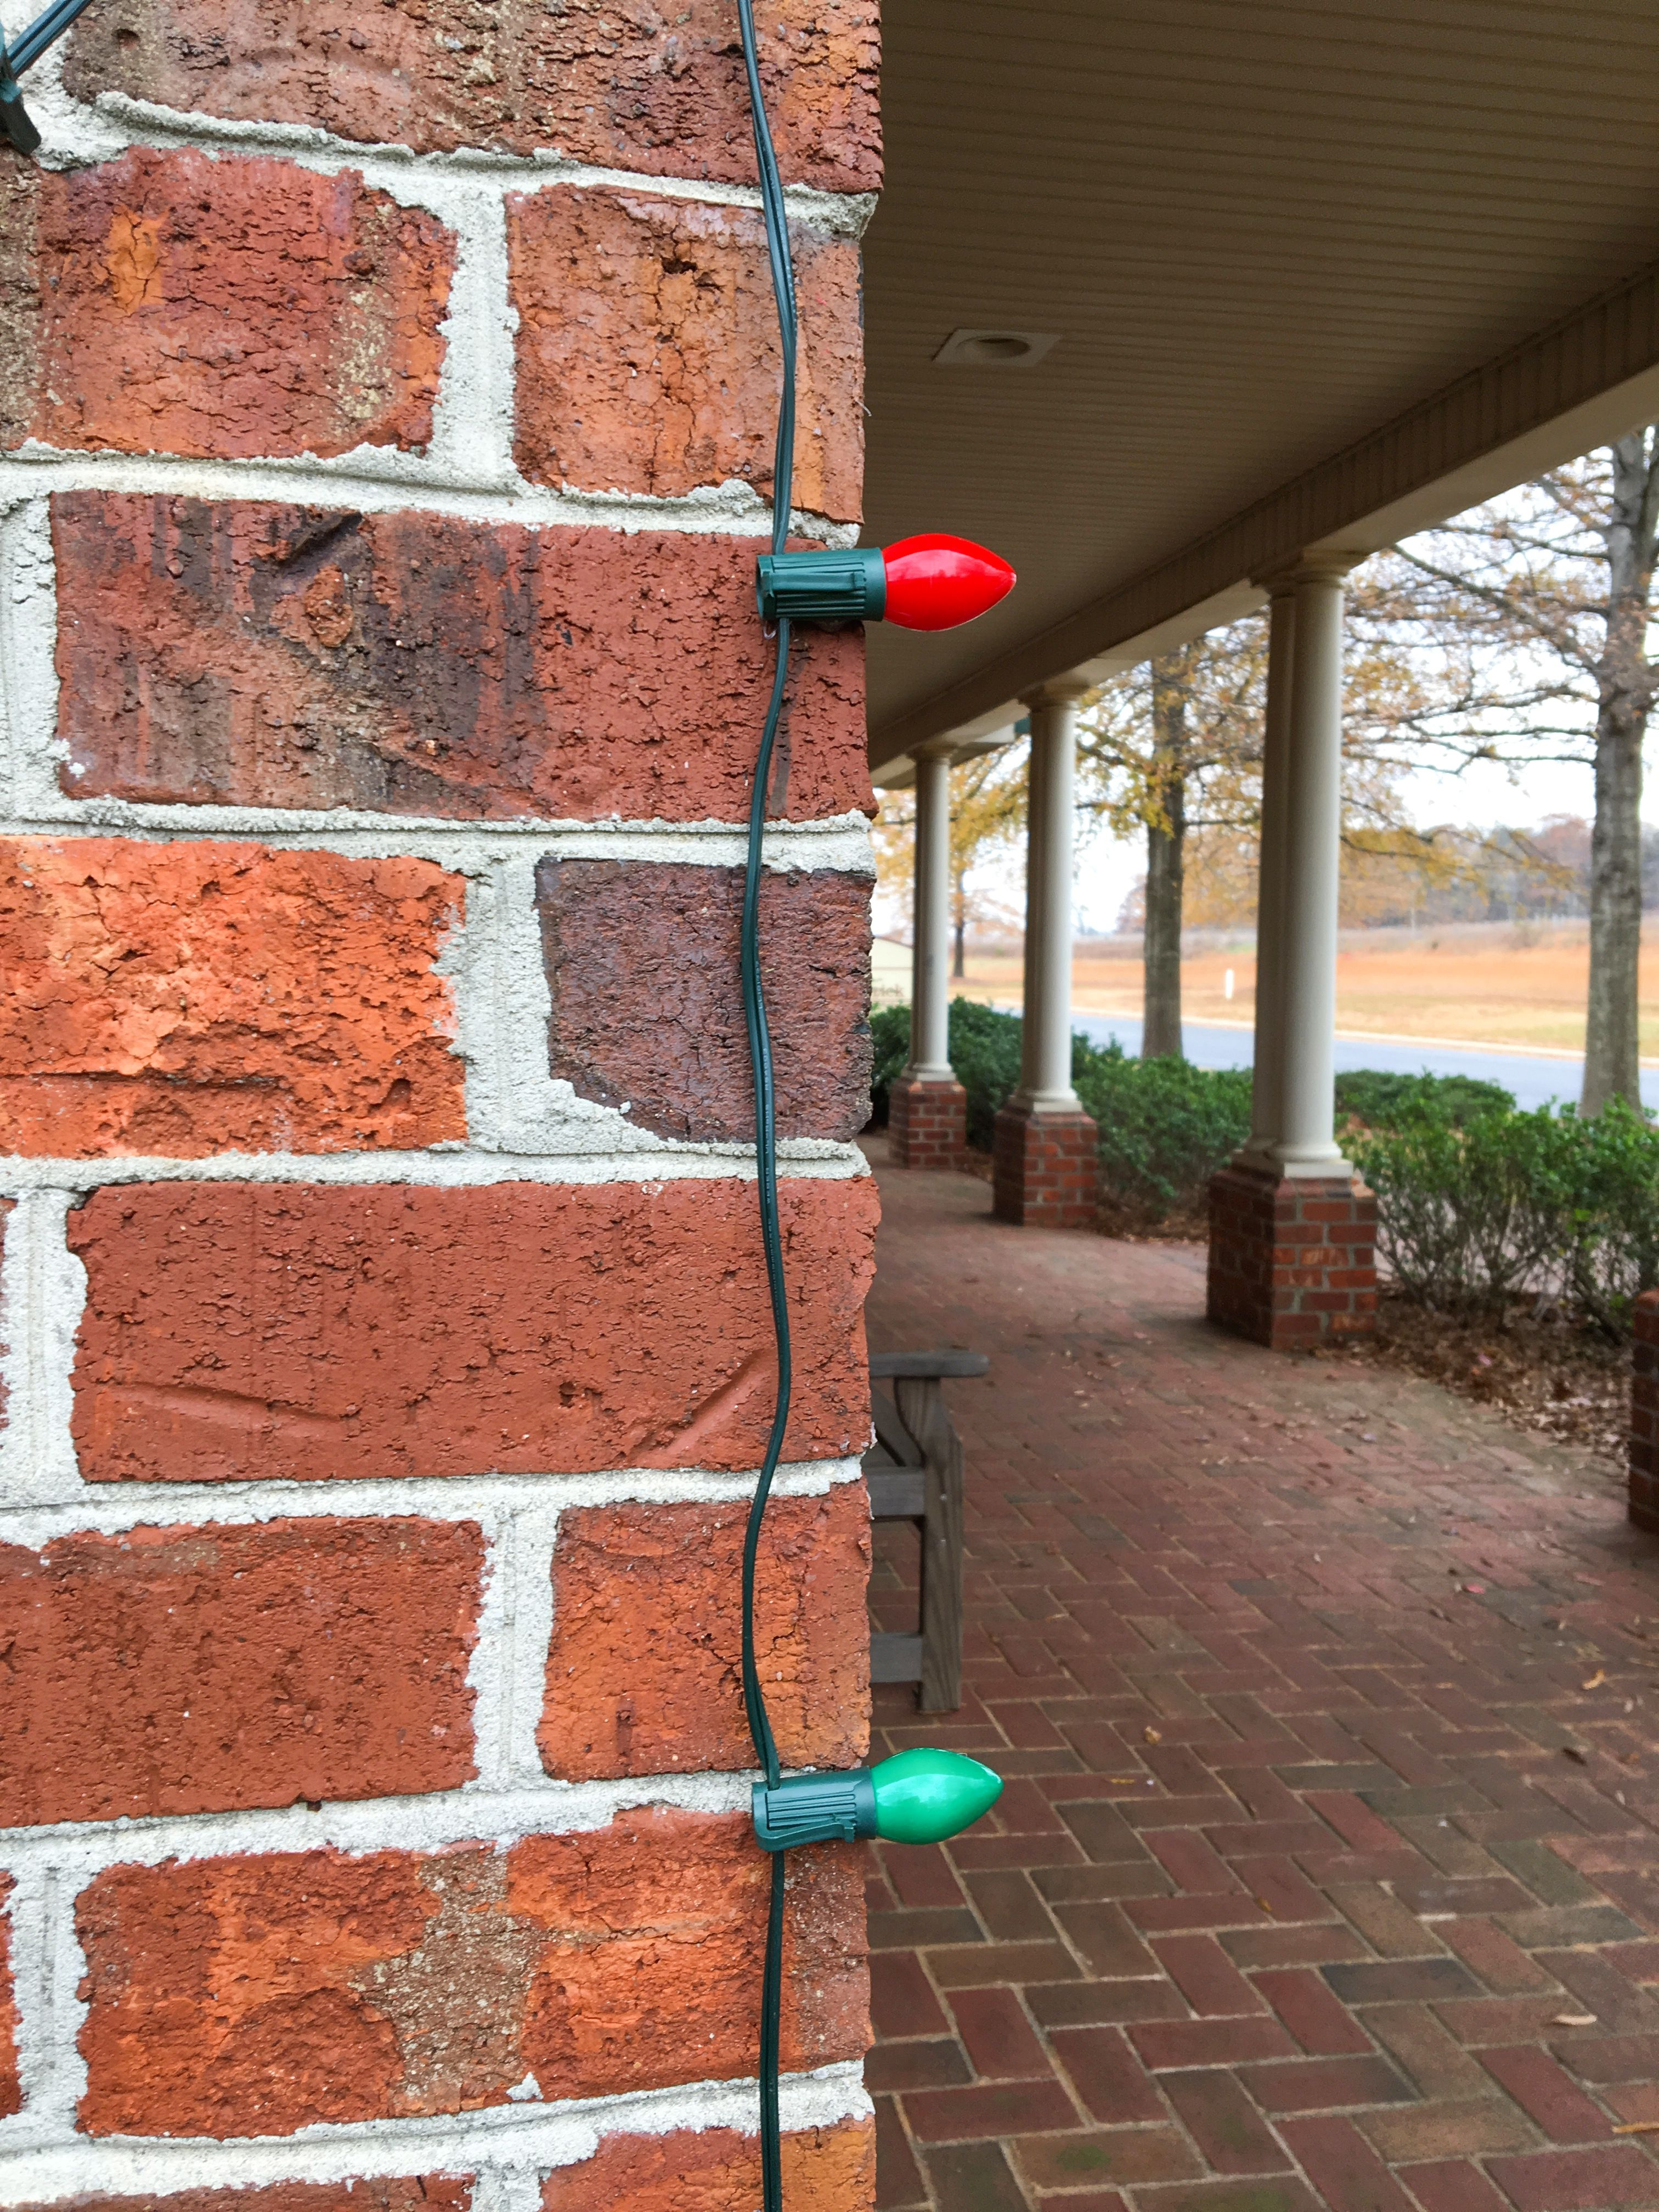 What Can I Use To Attach Christmas Lights To Brick how to secure christmas lights on a brick exterior